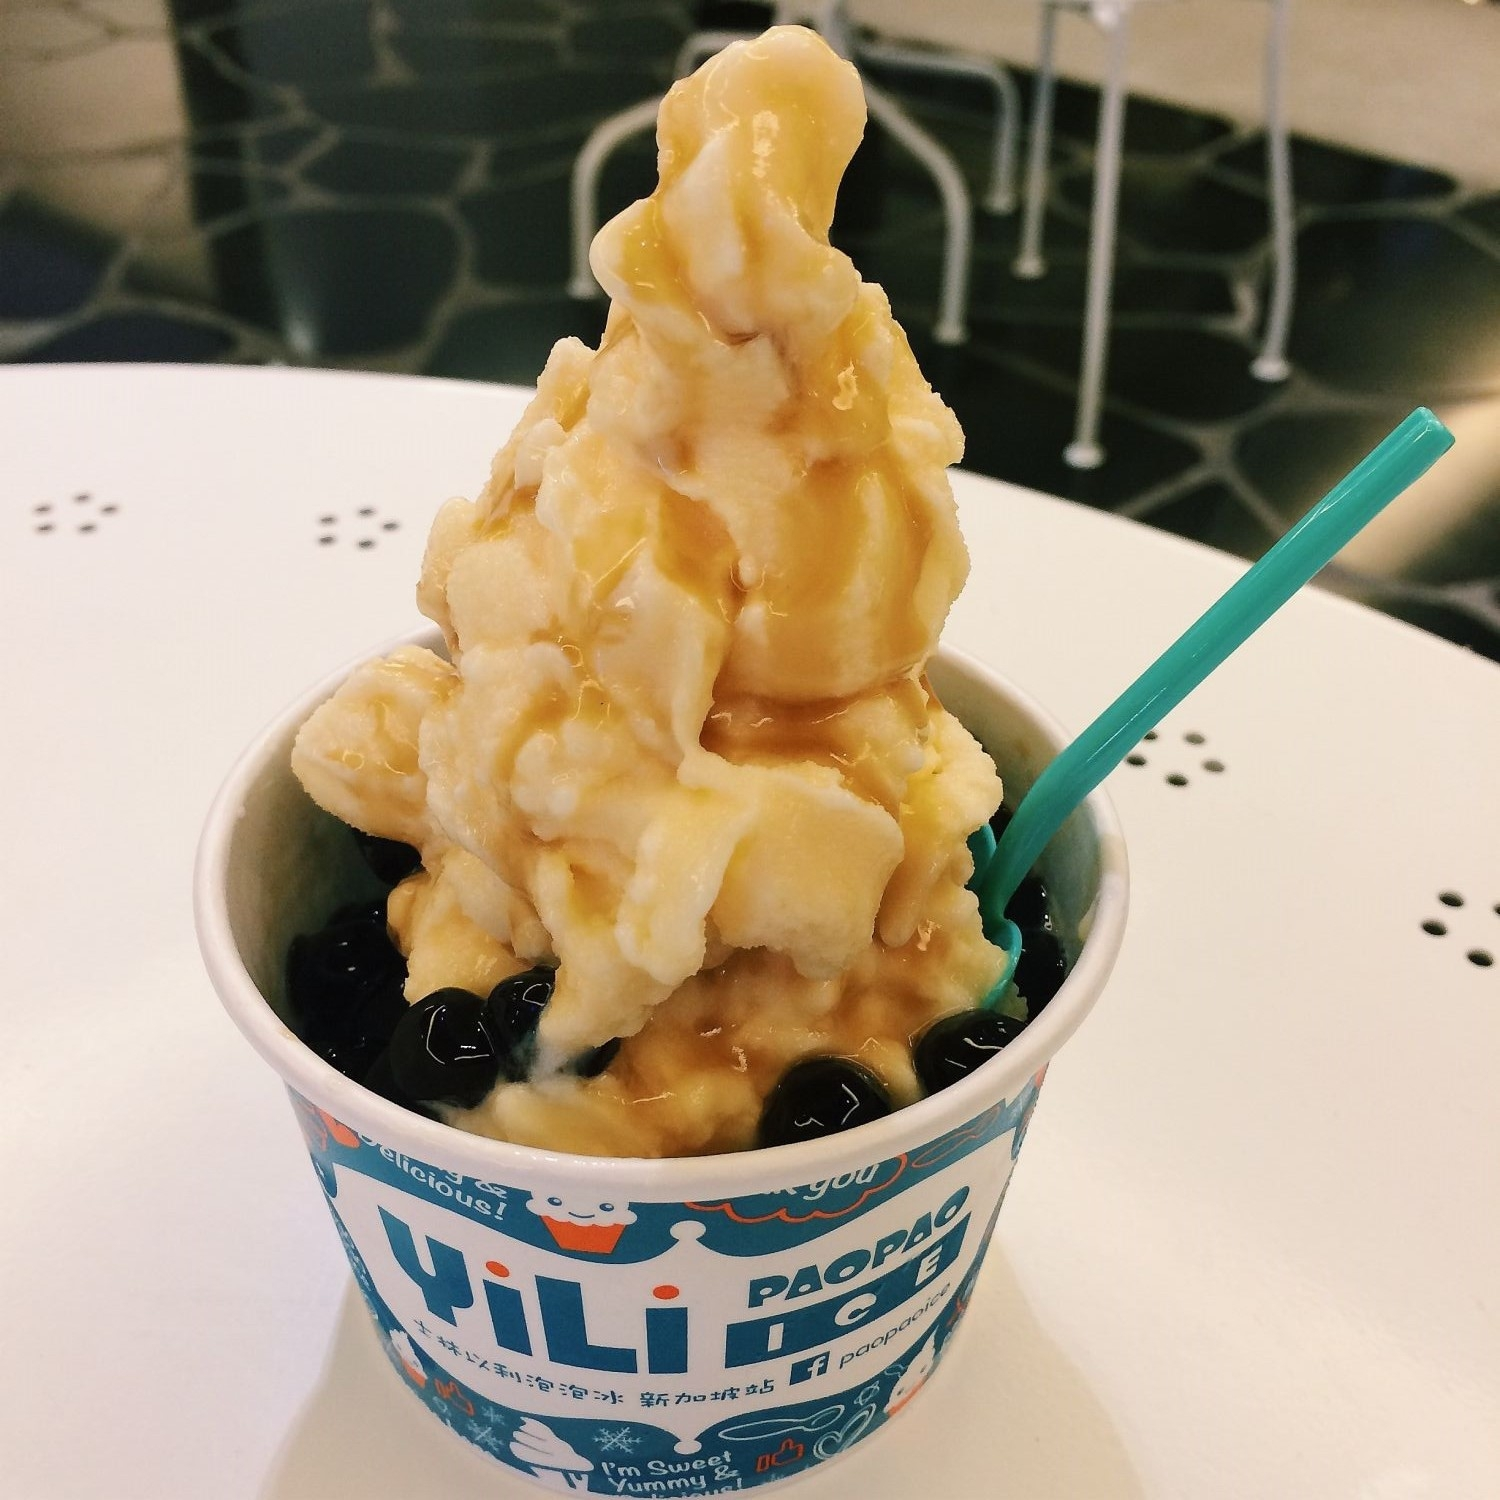 Boba Milk & Egg - Yili Paopao Ice